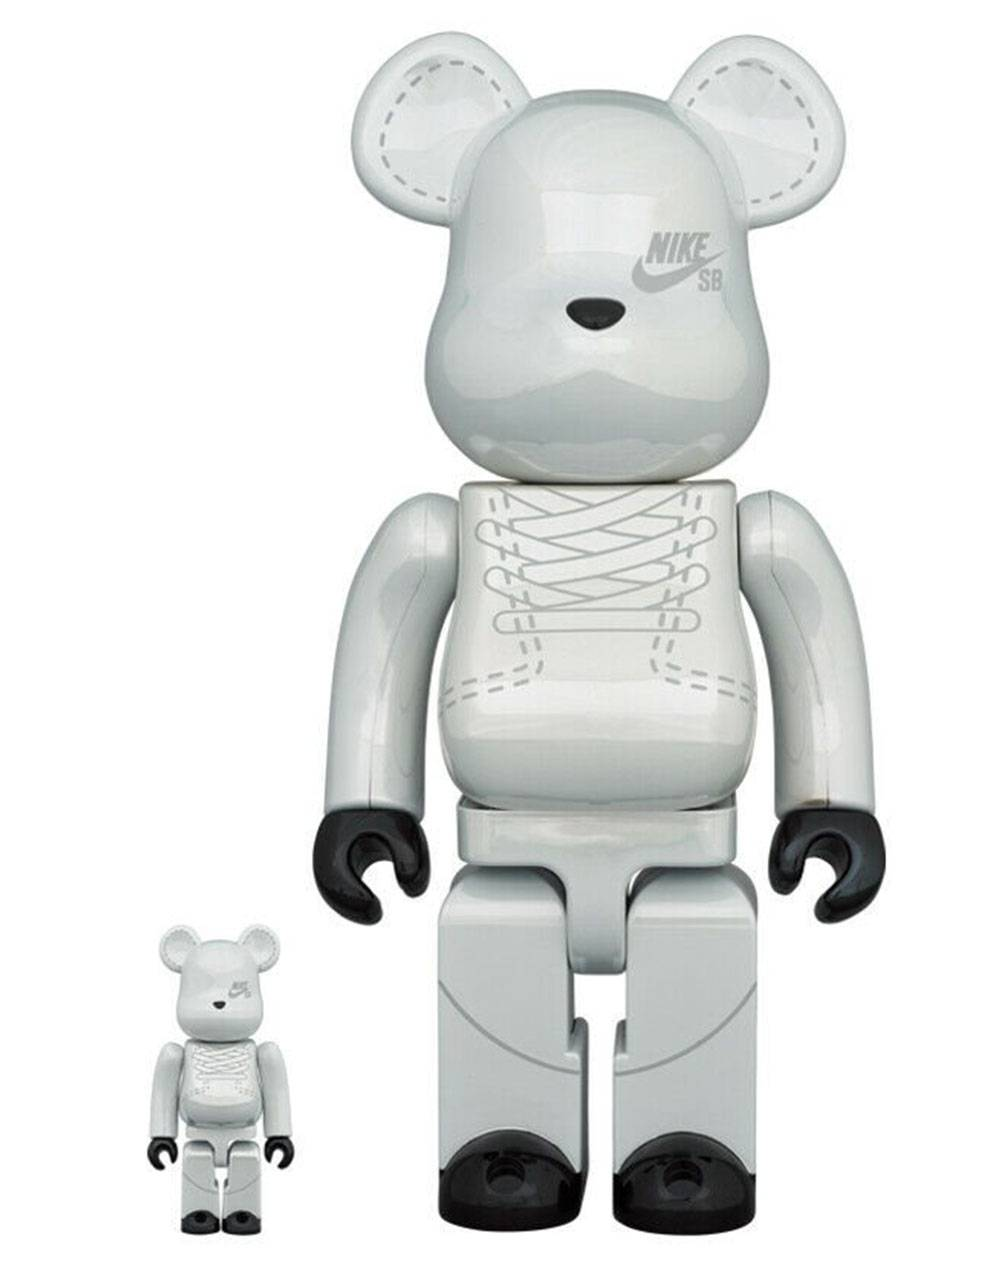 Medicom Toy Nike SB Bearbrick Set 100% 400% - Platinum White Medicom Toy Toys 204,92 €